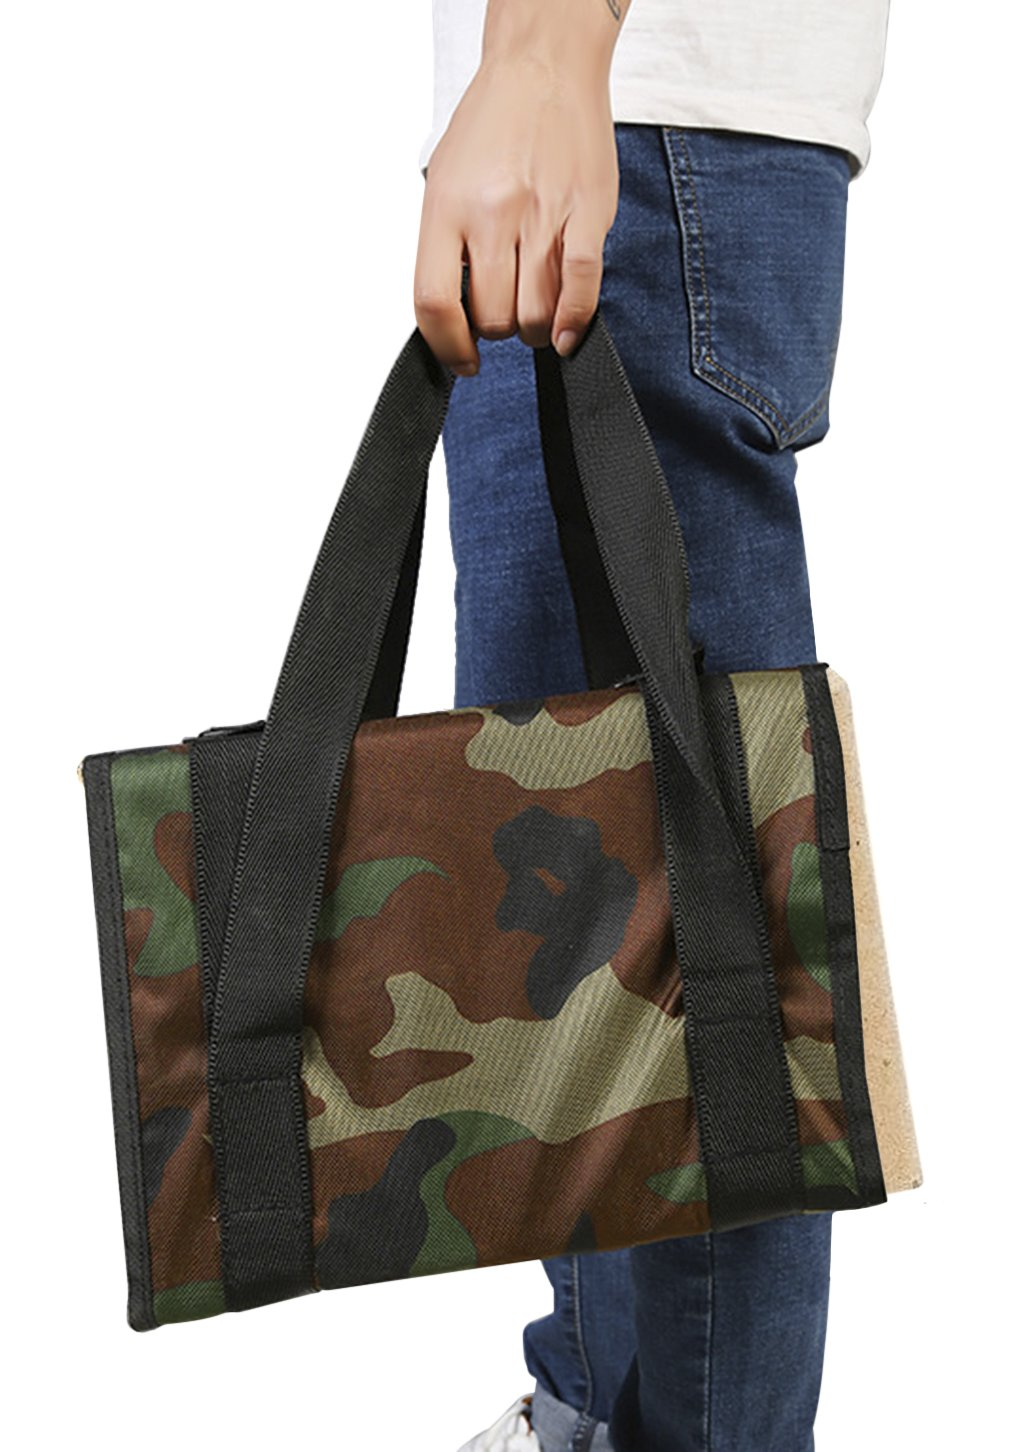 Camouflage Art Tool Sketch Bag Palette Organizer Drawing Board Holder Artist Carry Tote Storage Caddy Travel Case Box Pigment Satchel with Adjustable Strap Different Size for Sketching Painting Ylucky